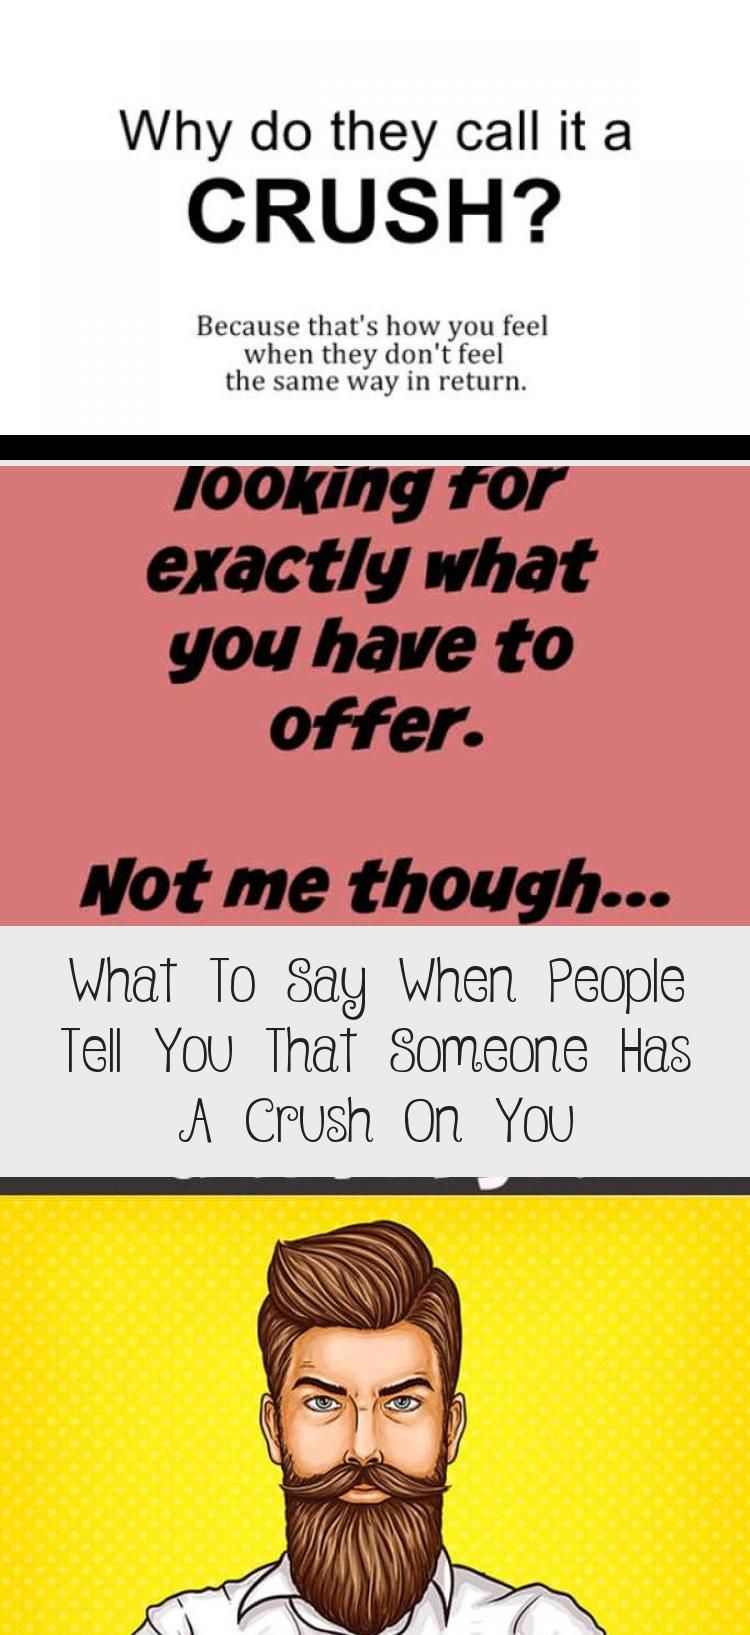 What To Say When People Tell You That Someone Has A Crush